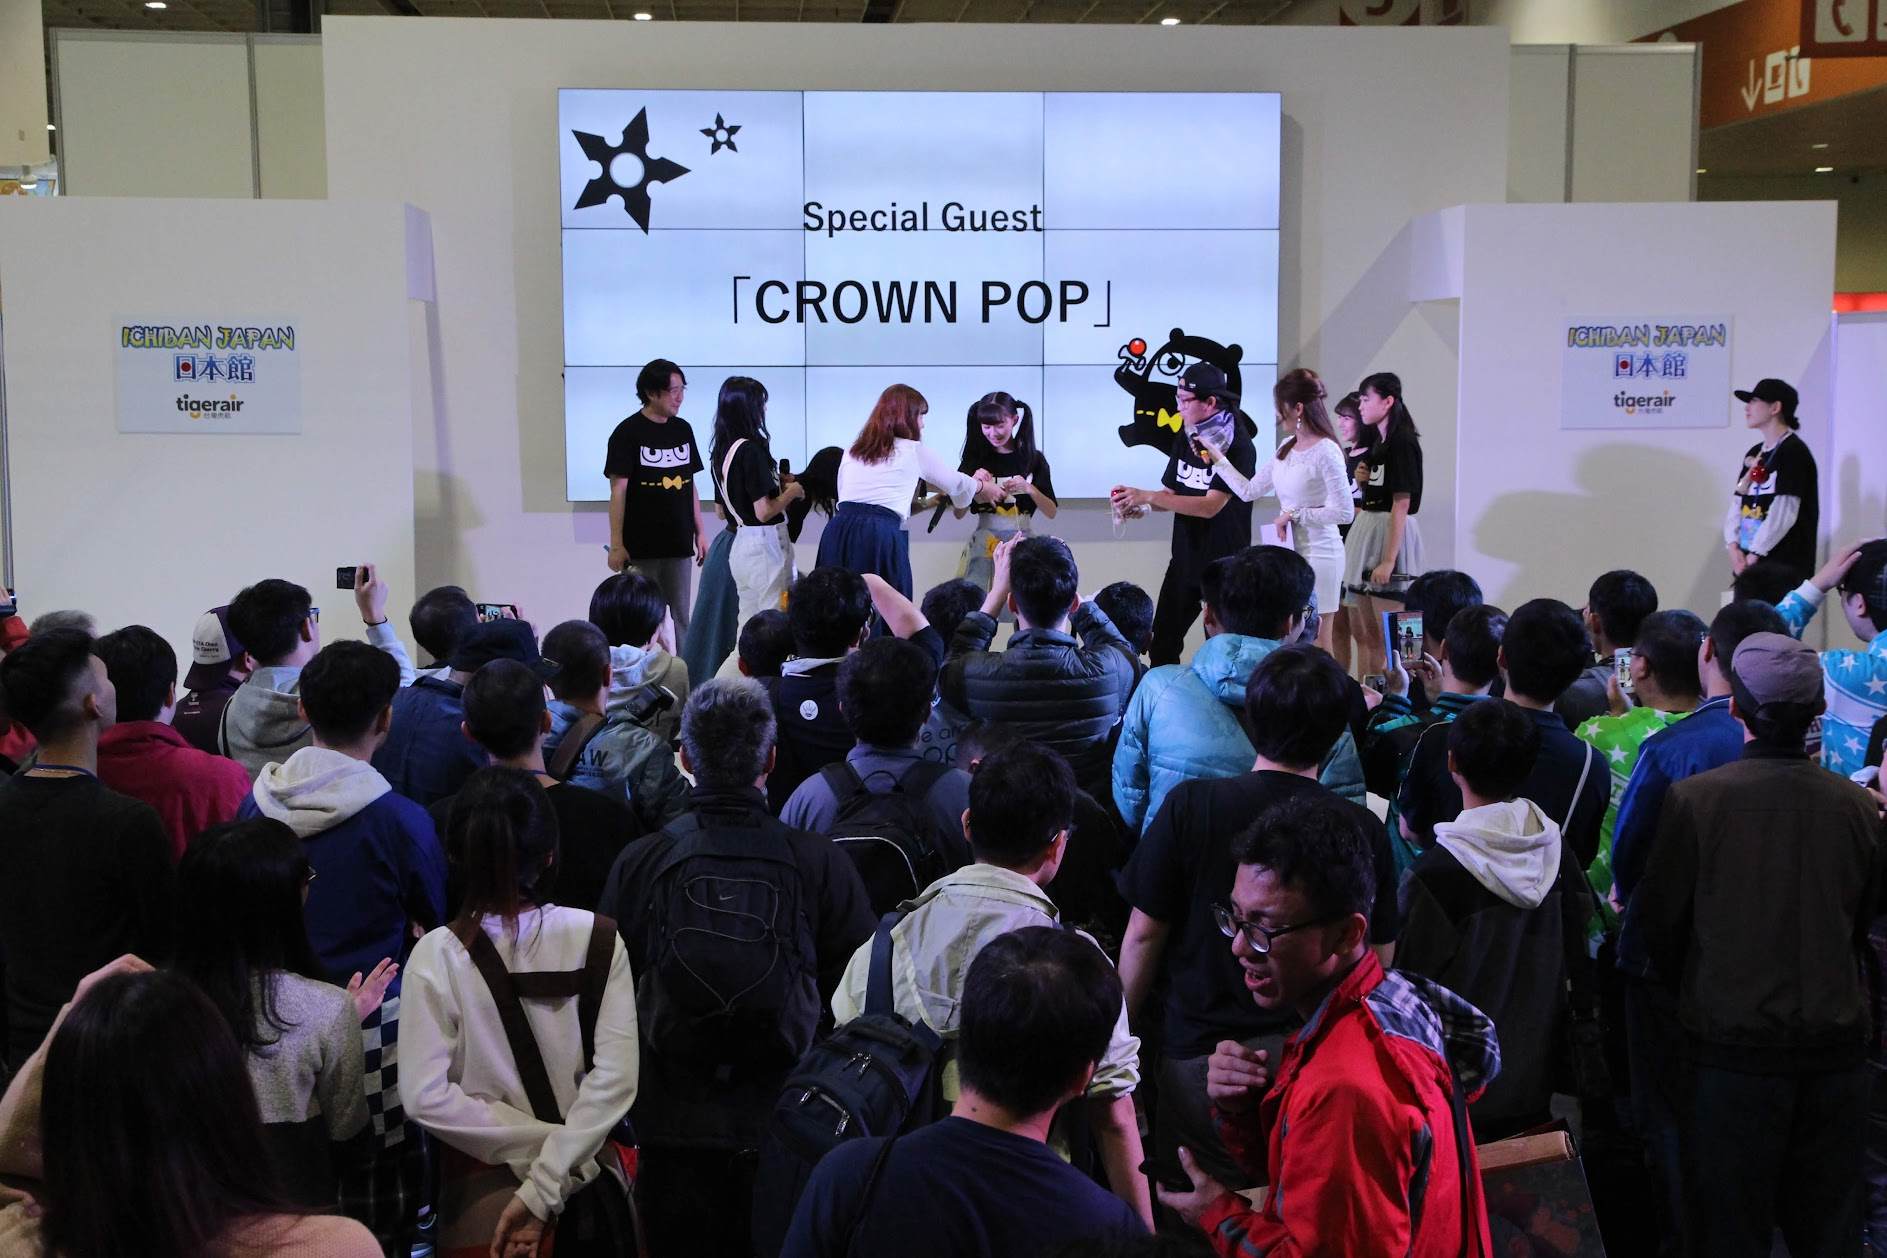 「忍者熊」劍玉高手和「CROWN POP」的合作舞台